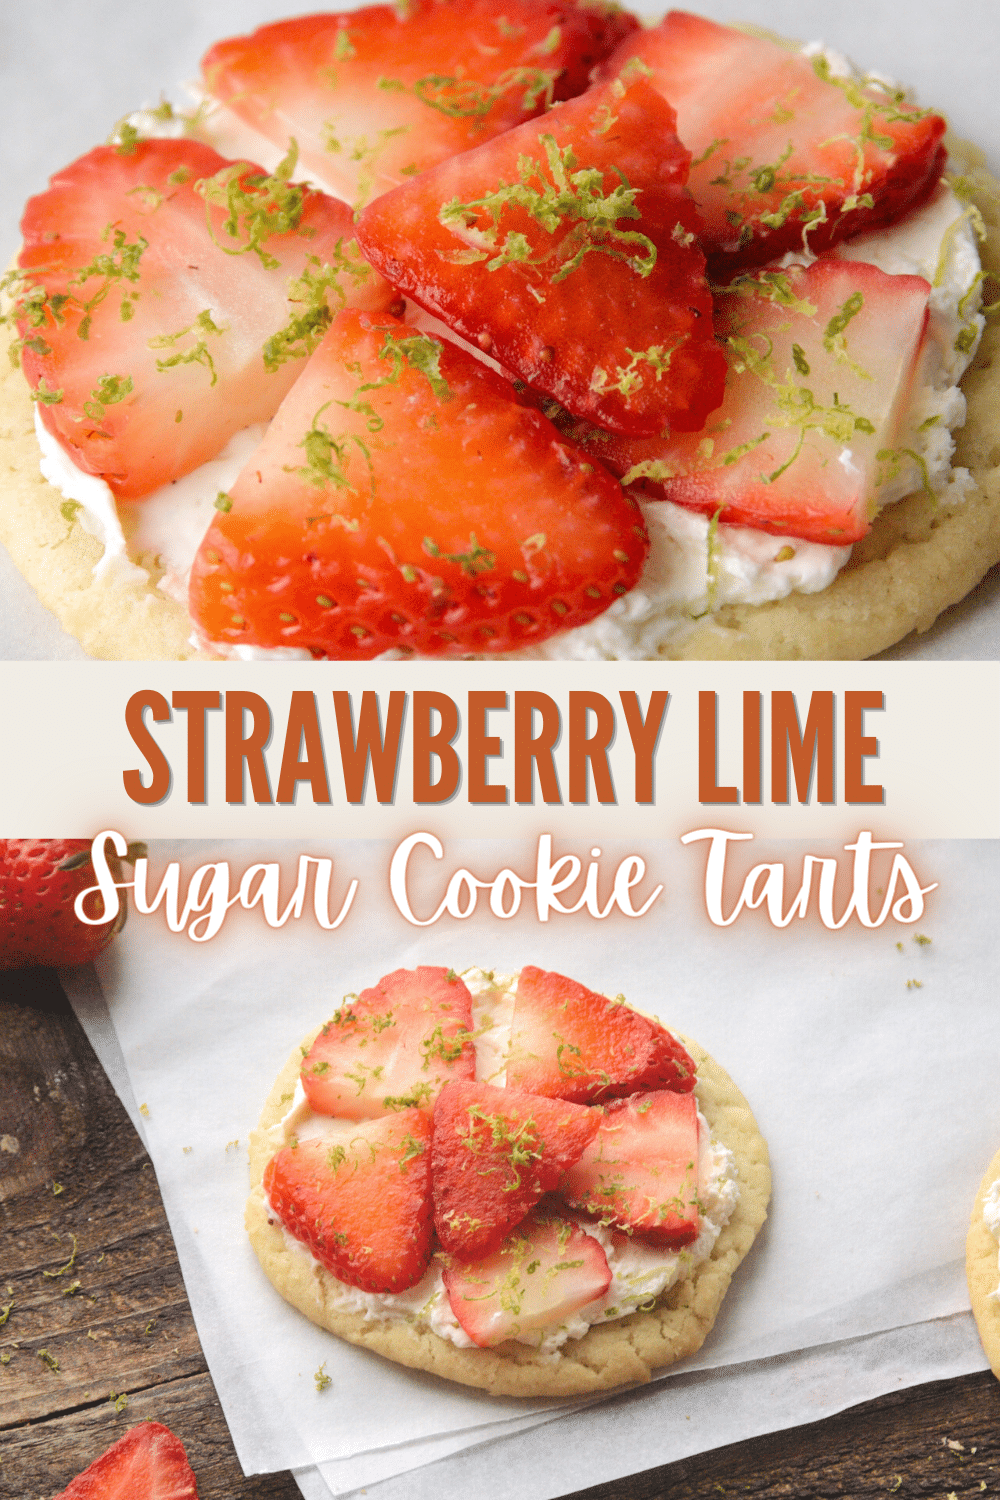 These Strawberry Lime Sugar Cookie Tarts are one of the best sugar cookie recipes. The sweetness of the strawberry with the lime is the best! #strawberry #lime #cookietarts #sugarcookie #recipe via @wondermomwannab